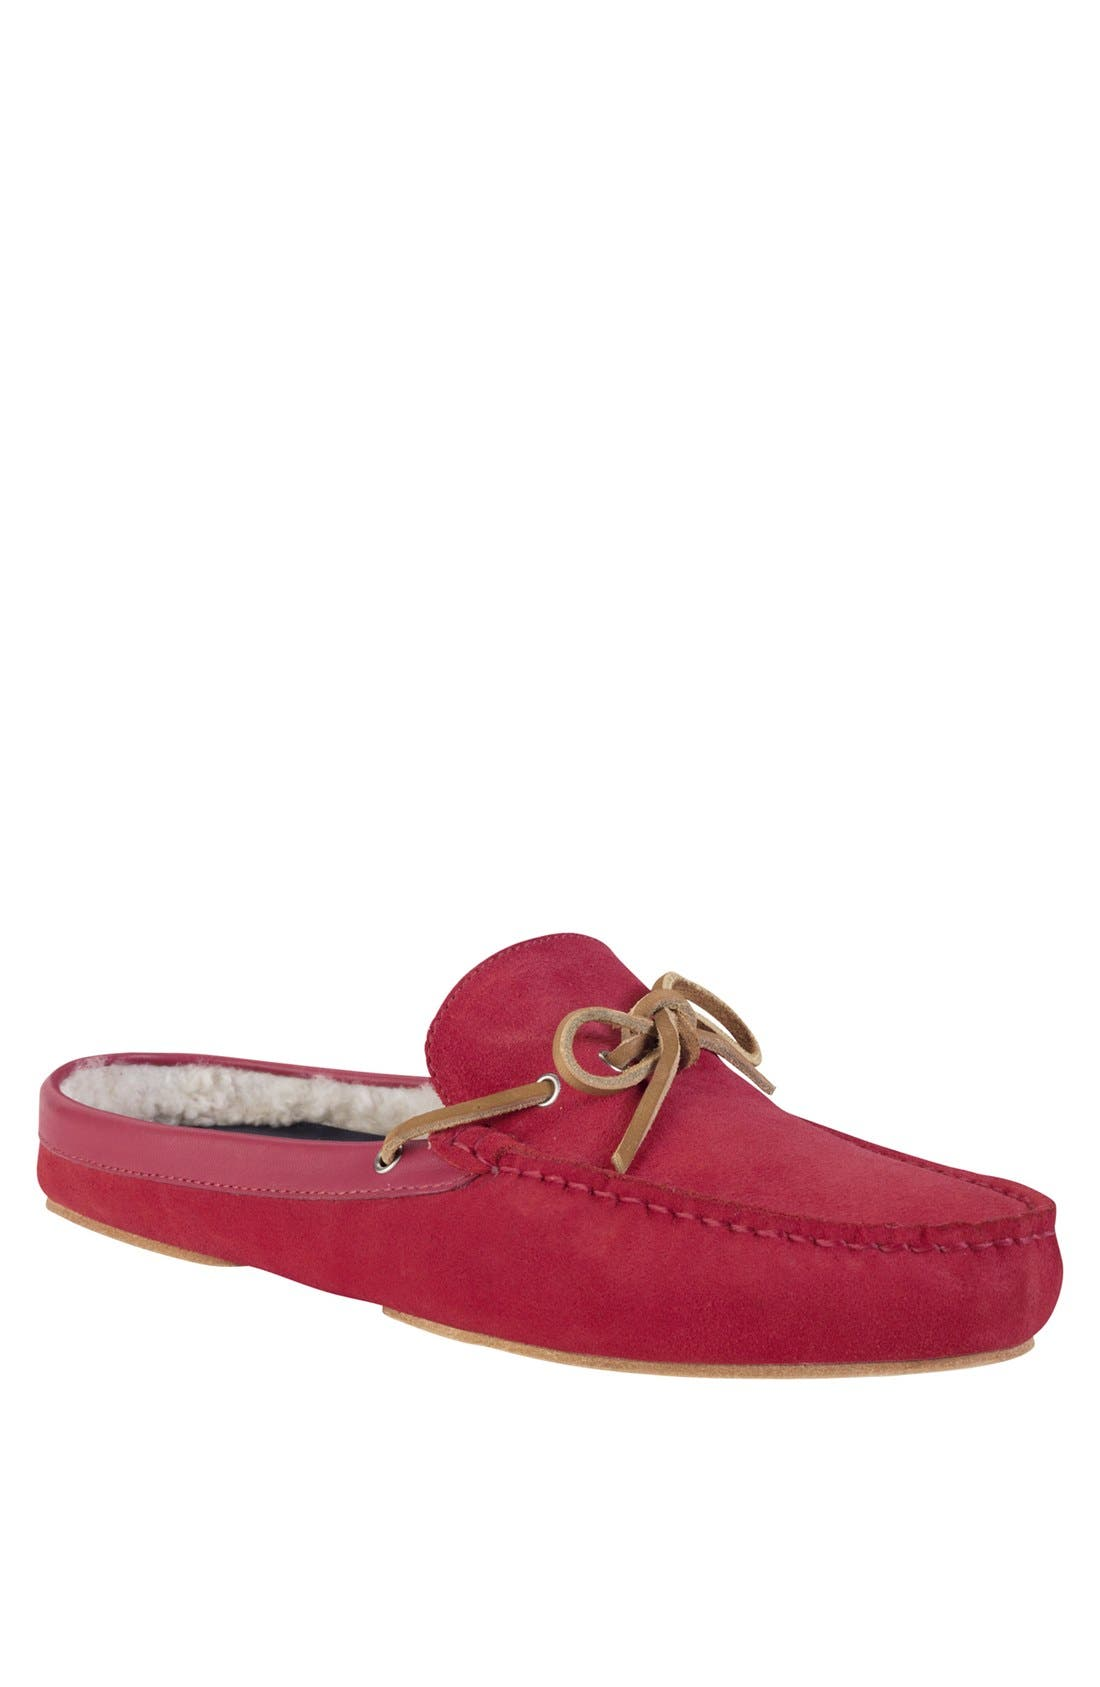 Main Image - Cole Haan 'Grant' Slipper